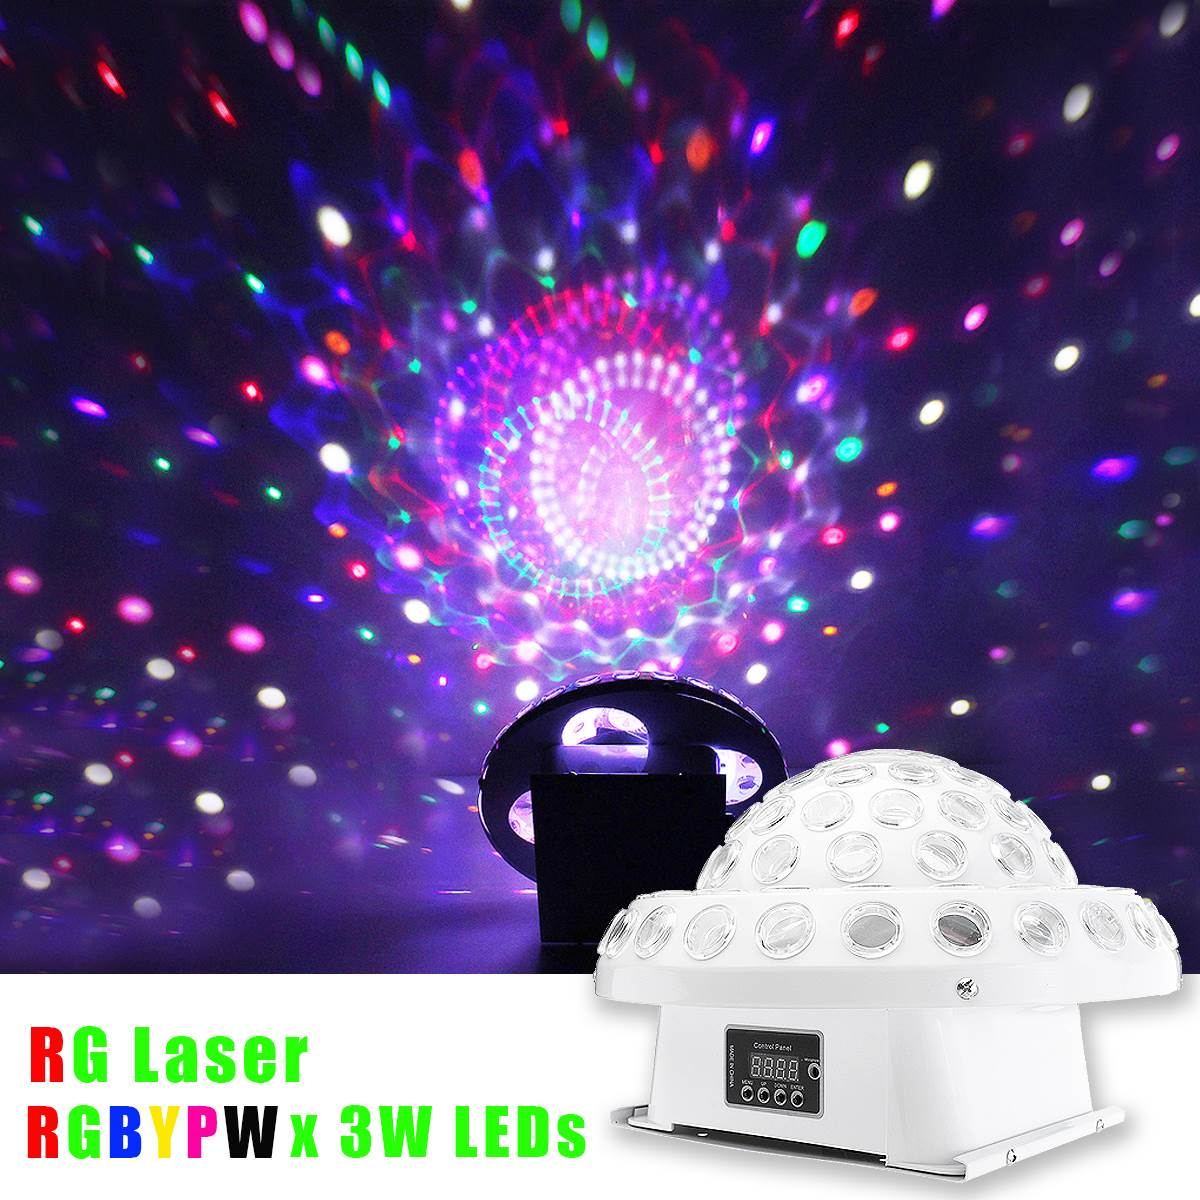 Big LED Magic Crystal Ball RGB Stage Lighting Effect DMX Remote Control Laser Light Night Lamp Disco DJ Club Bar KTV Party Decor laideyi 36 rgb led stage light effect laser party disco dj bar effect up lighting dmx projection lamp ktv party light